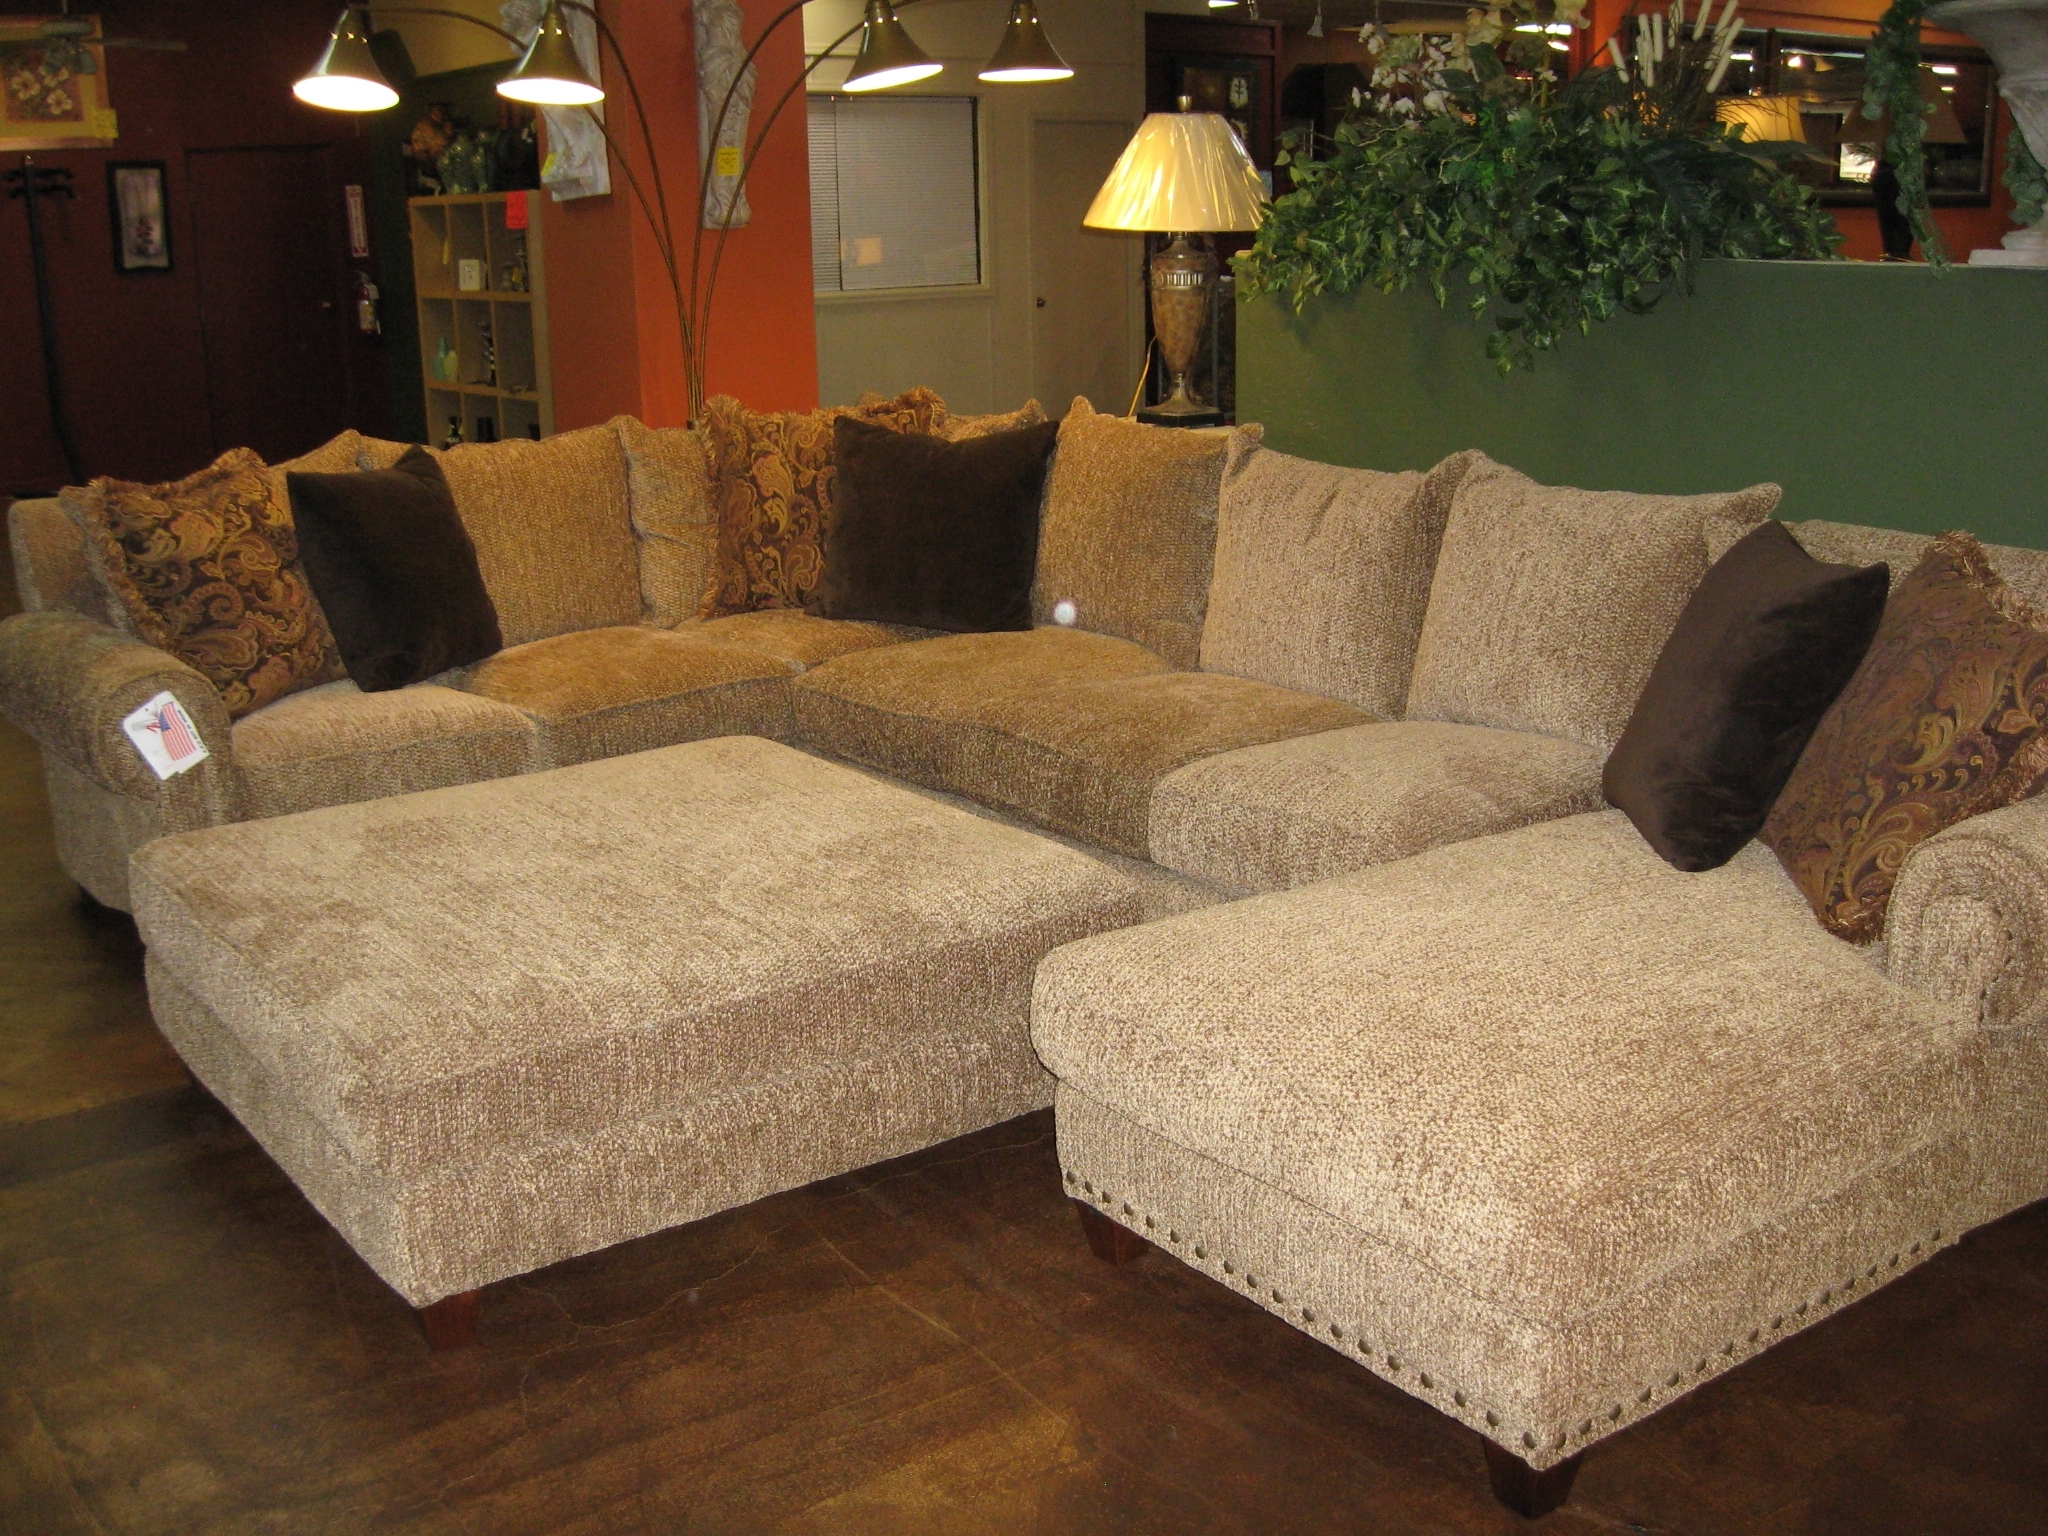 Couches With Large Ottoman Pertaining To Best And Newest Elegant Large Sectional Sofa With Ottoman 52 With Additional (View 6 of 20)